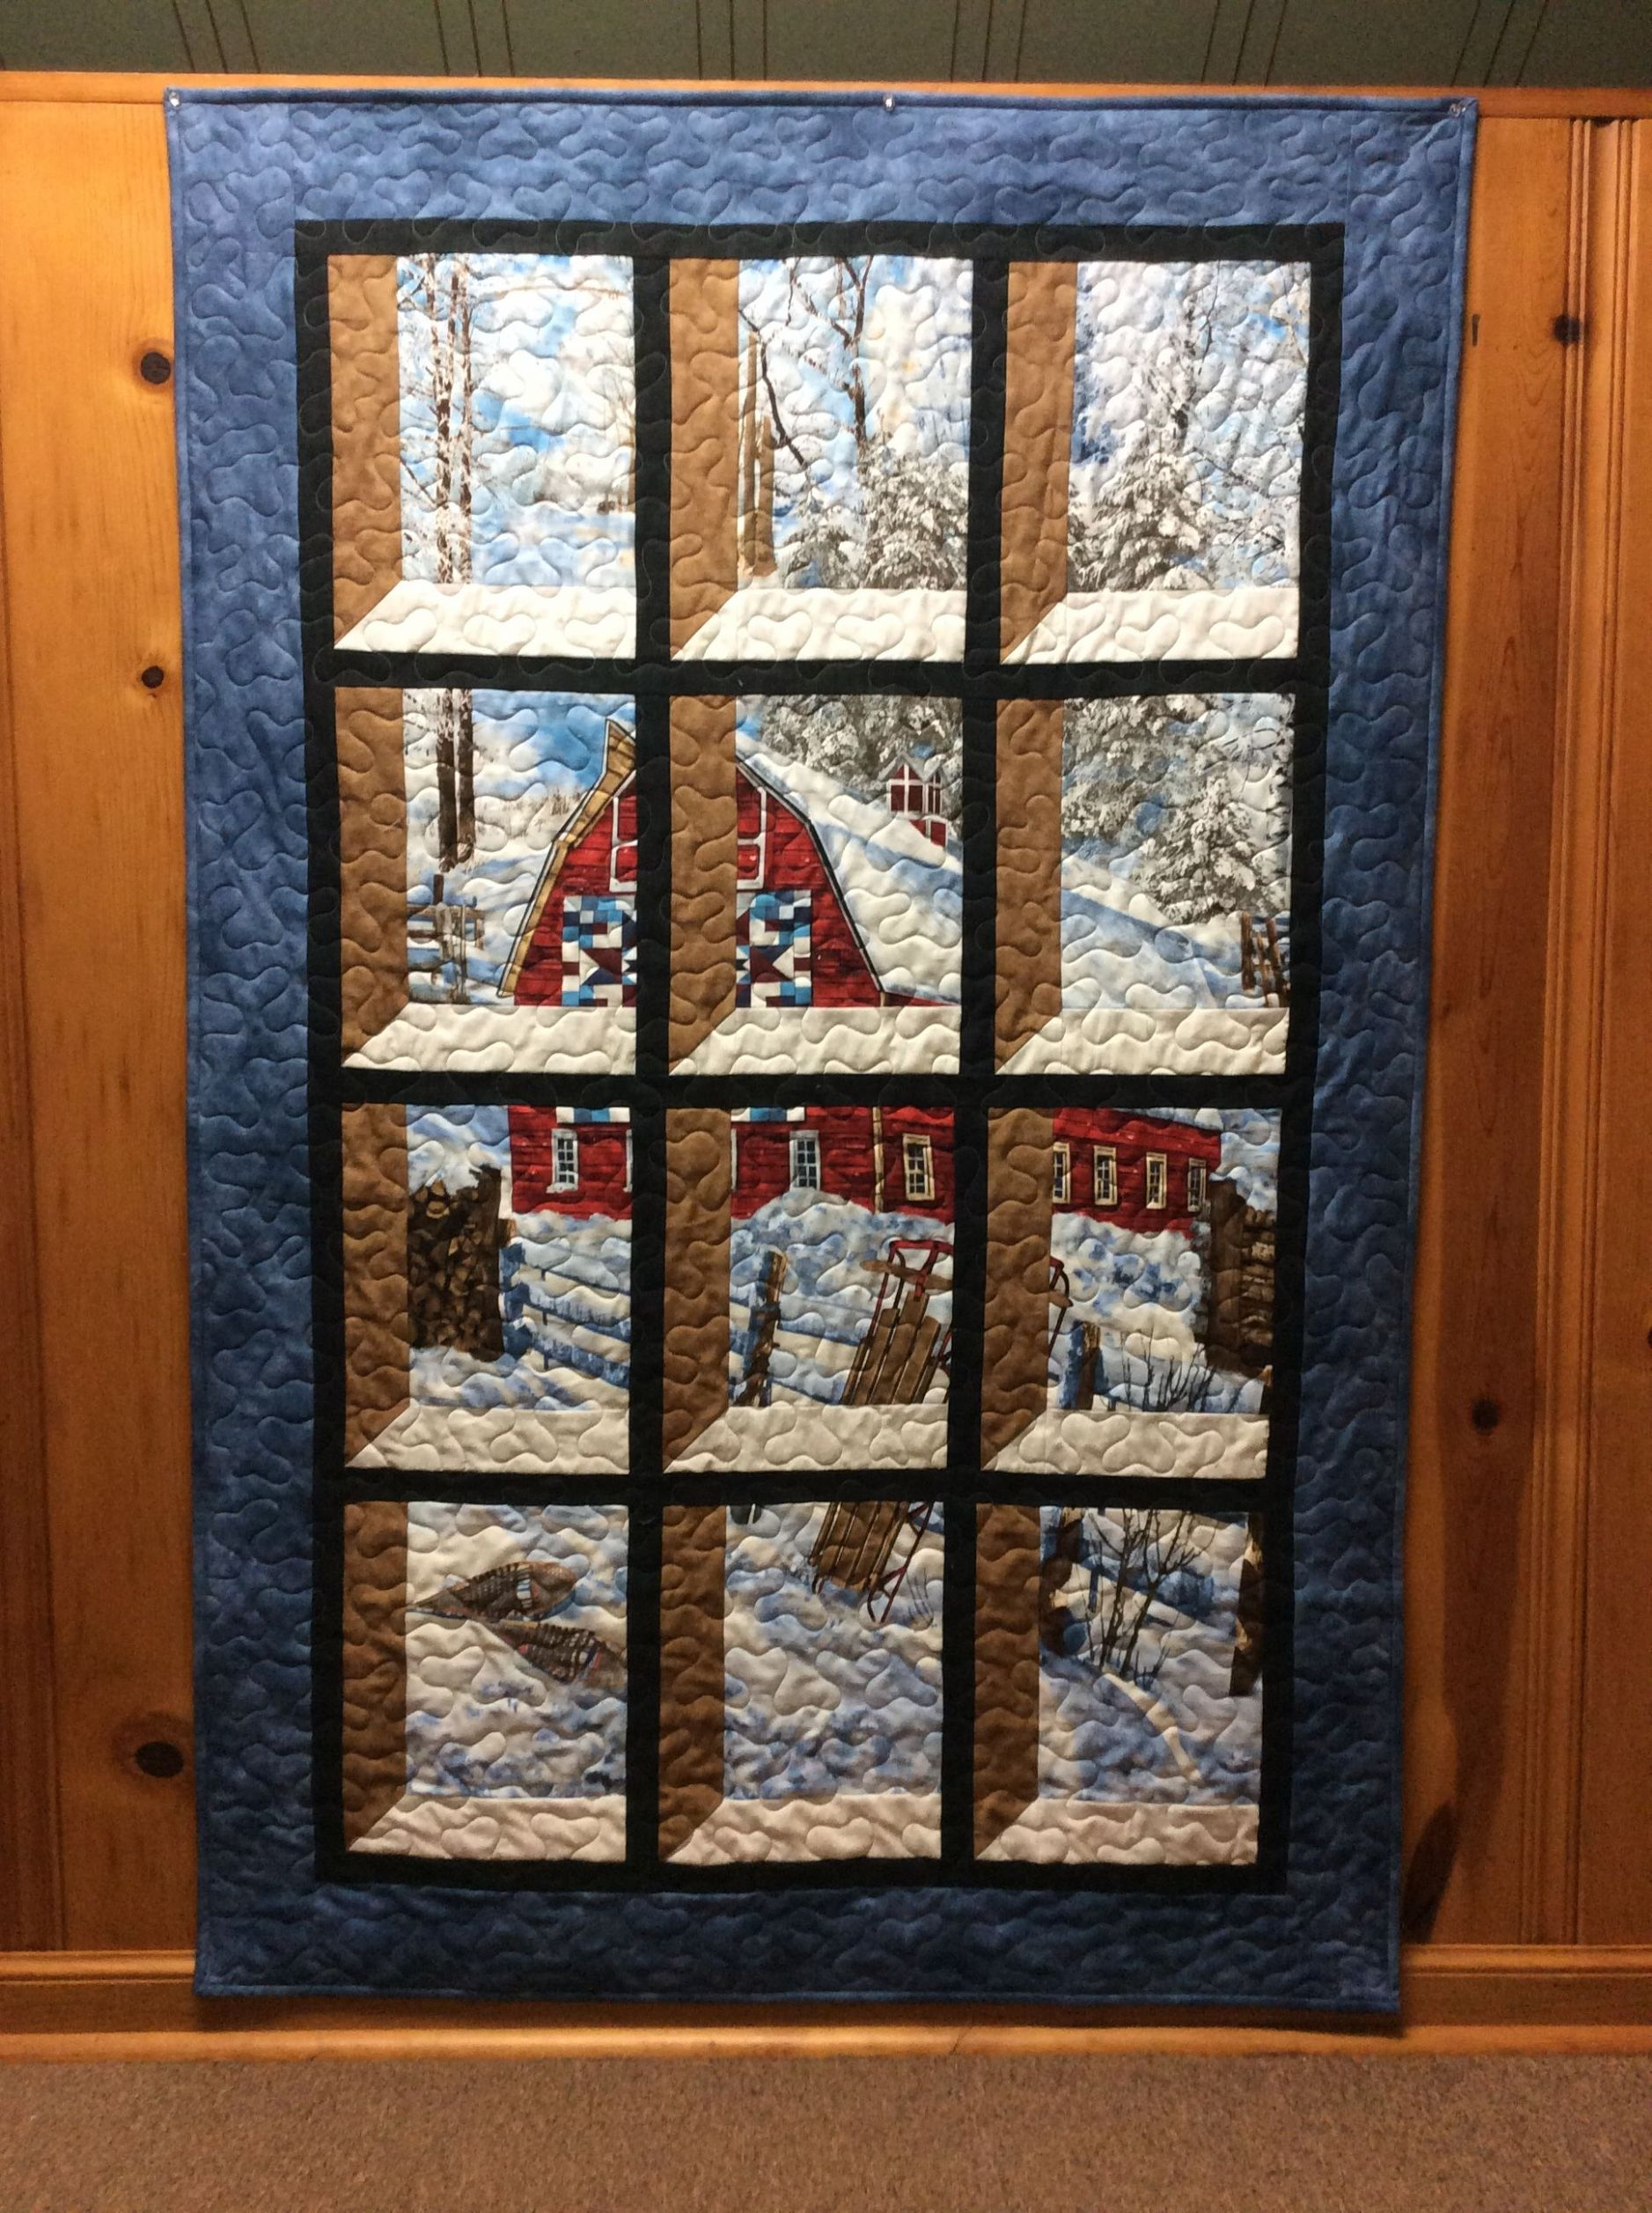 Attic Window Quilt Barn Quilt | Attic window quilts - window pane quilt ideas